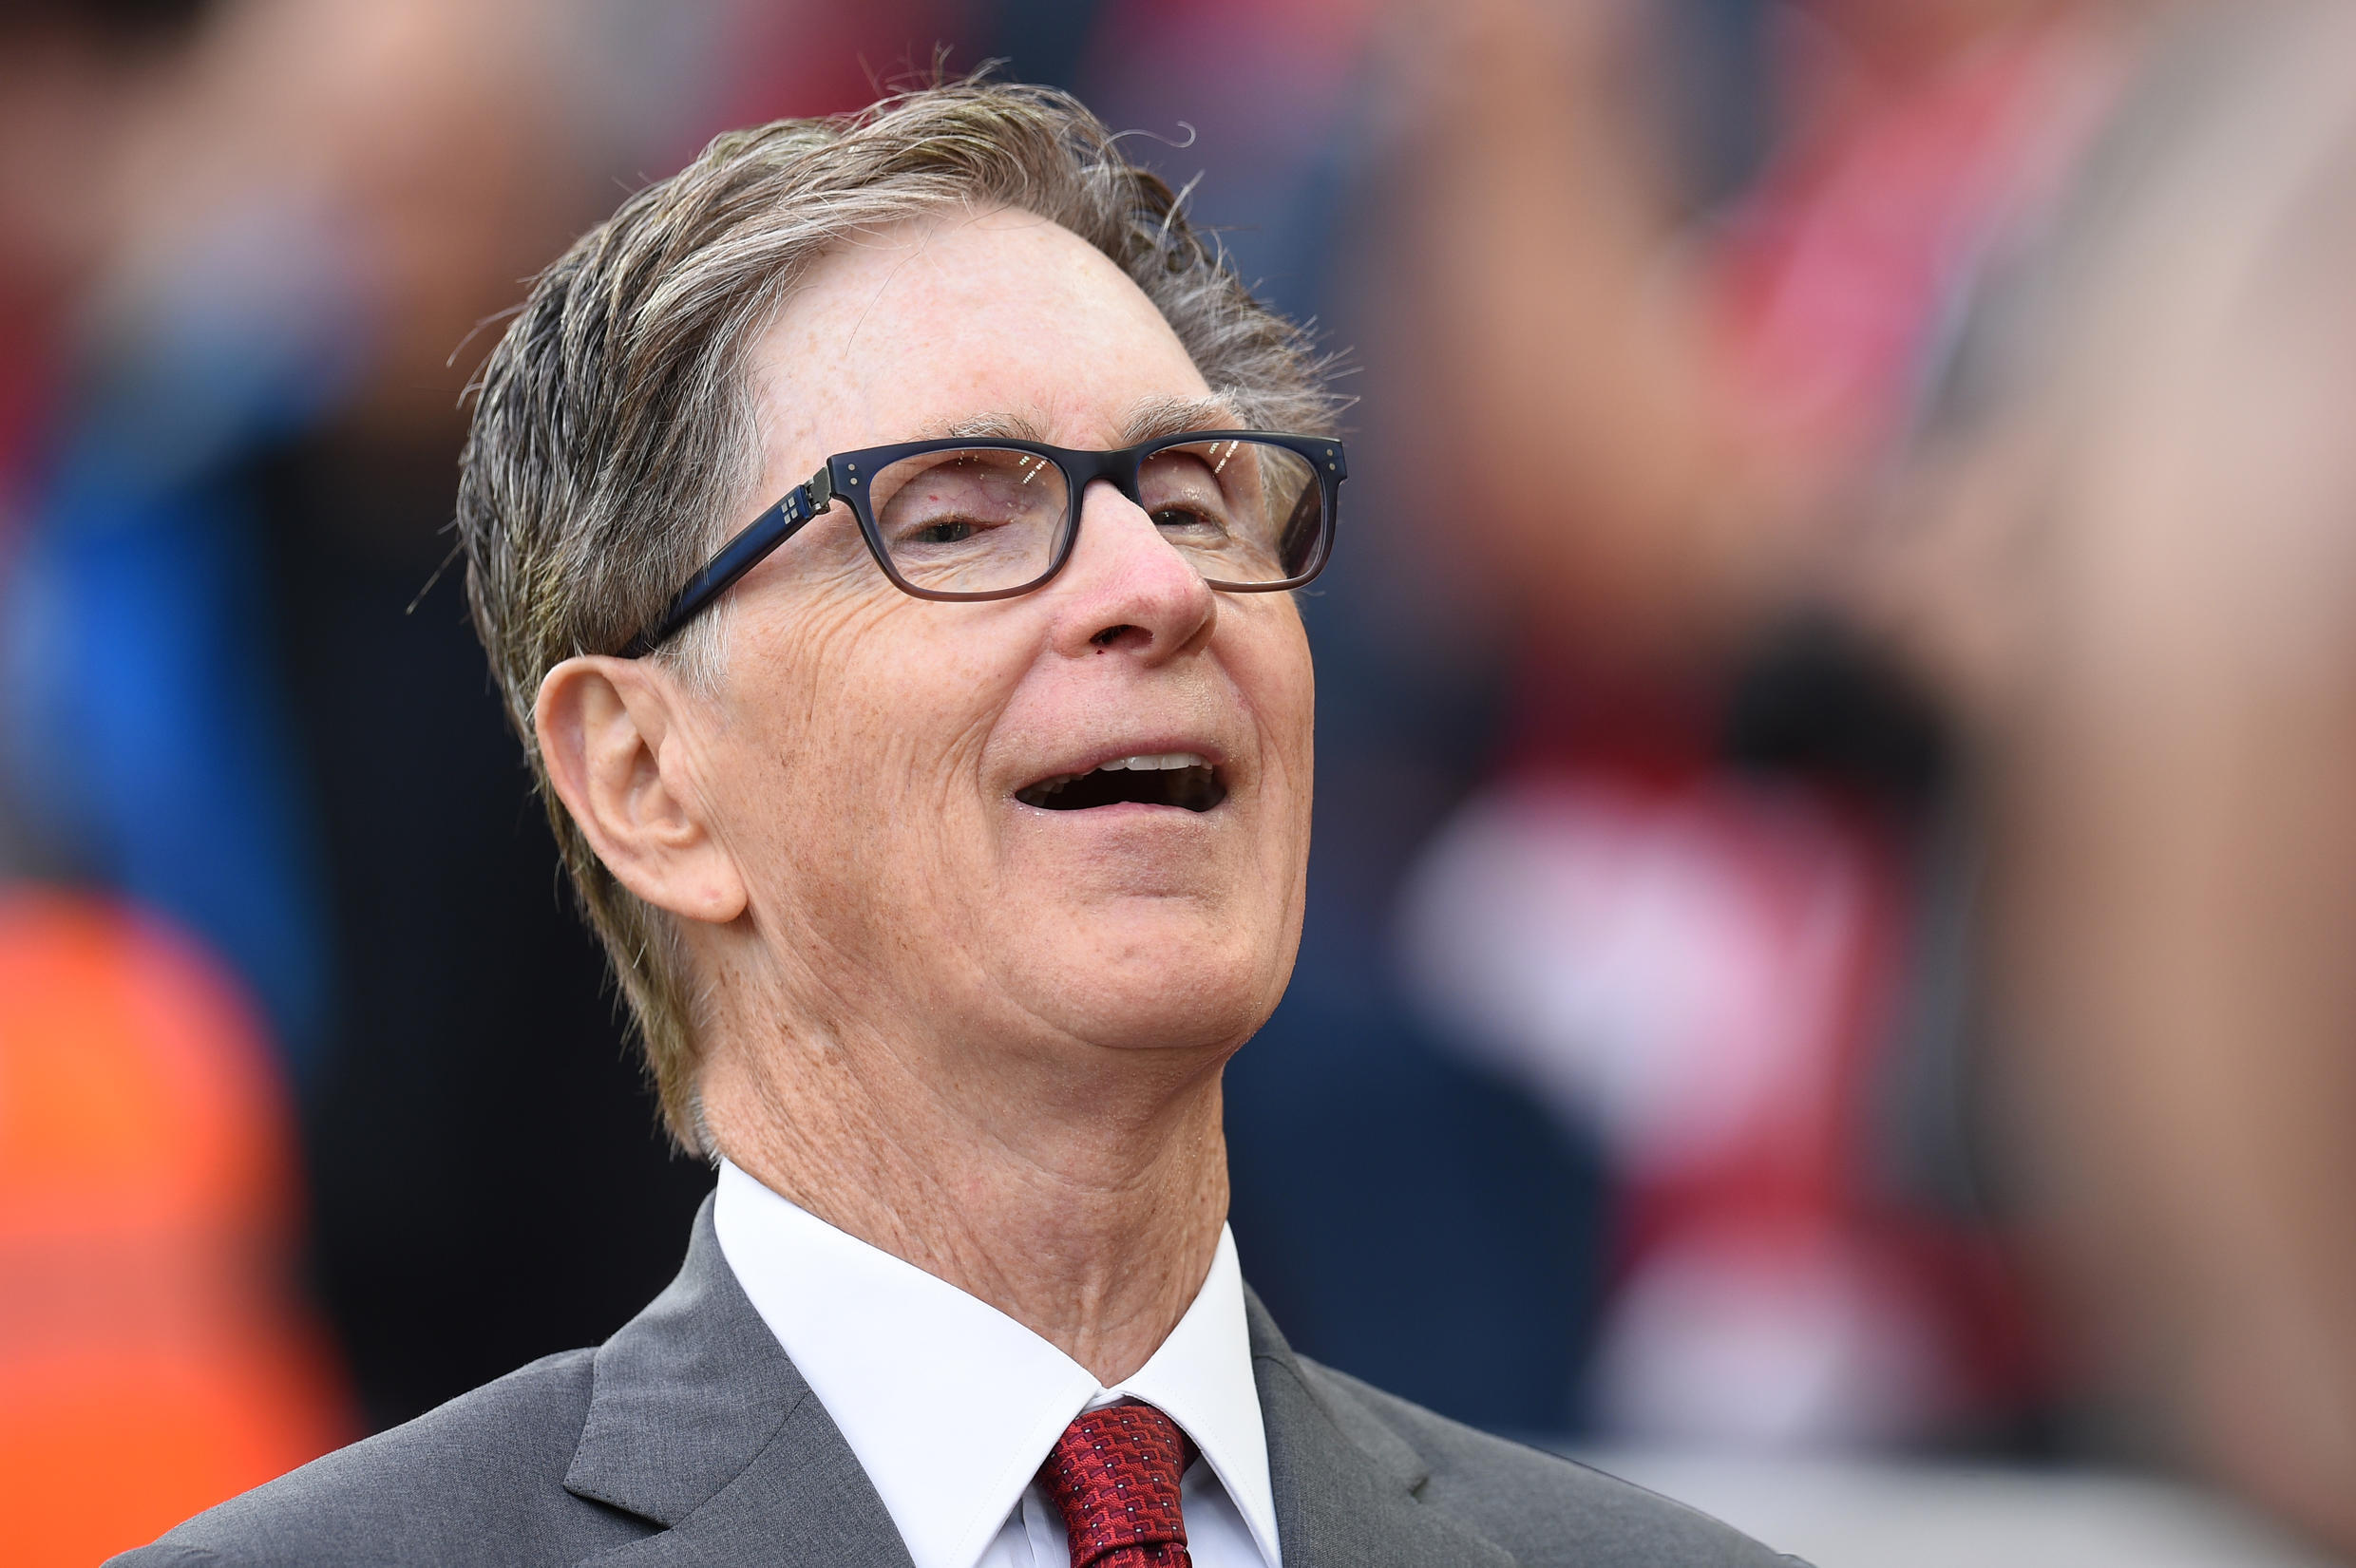 Liverpool owner John W Henry has apologised to fans over the ill-fated European Super League venture